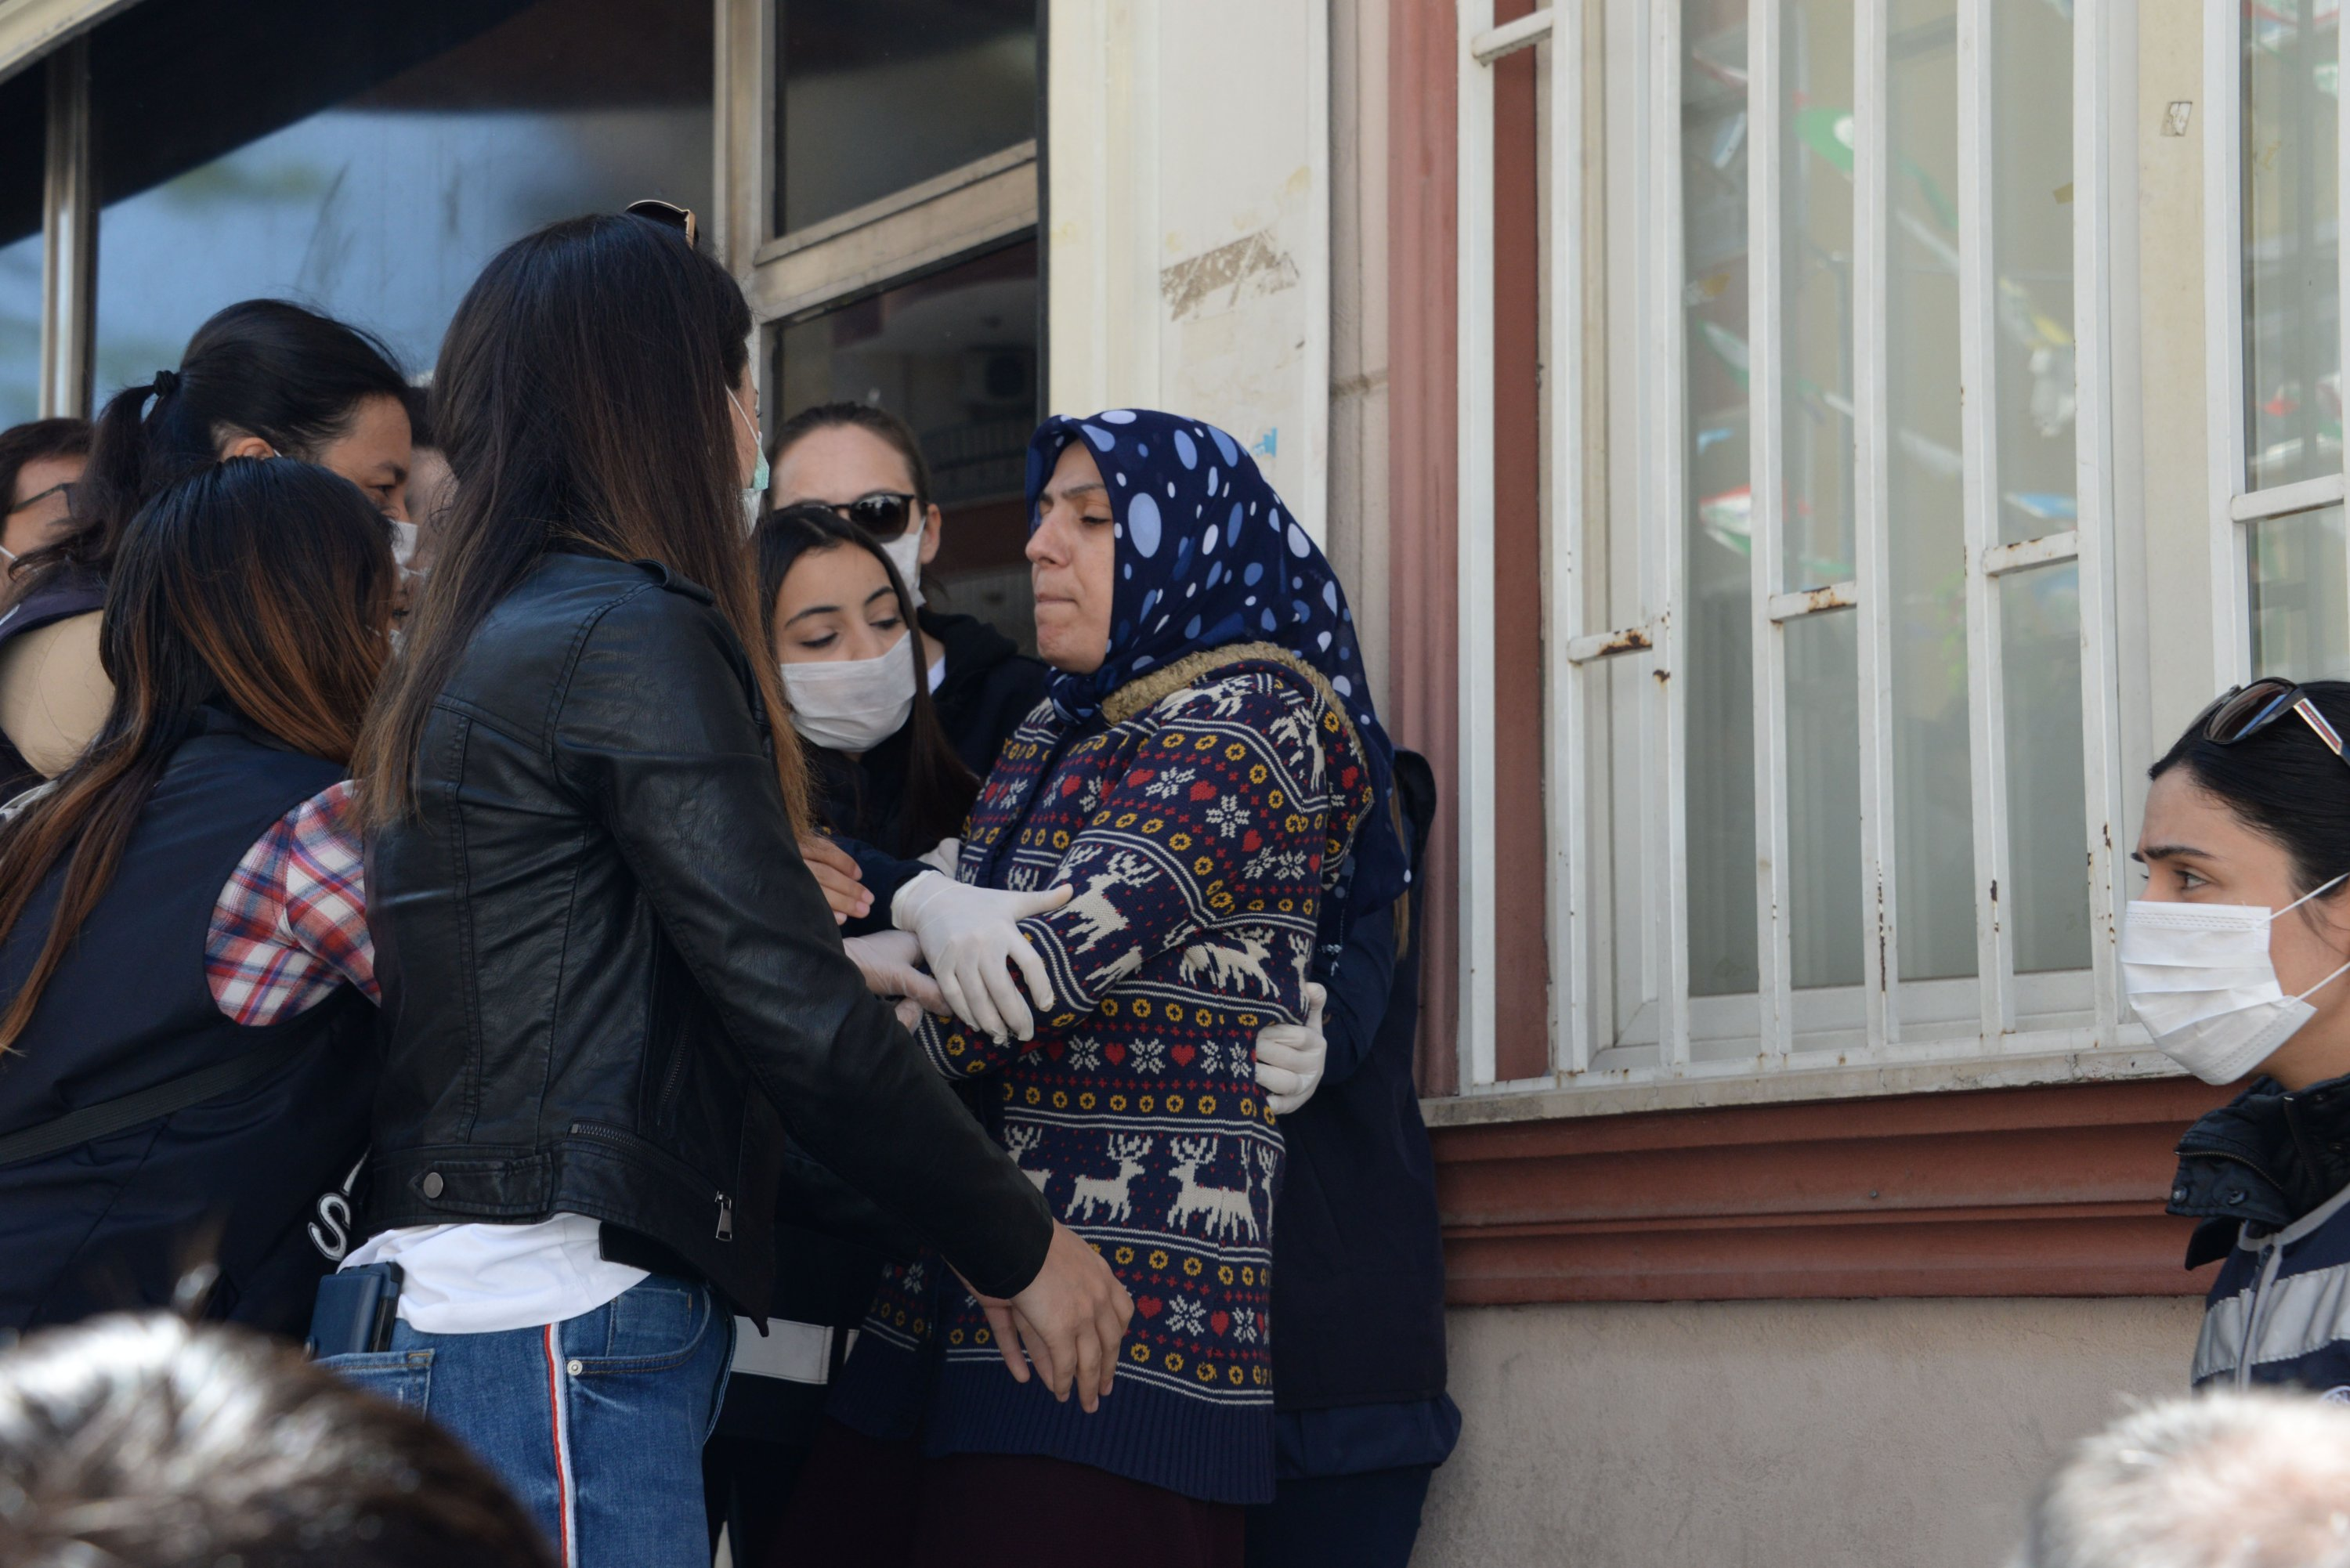 Ayşegül Biçer's, whose son has been kidnapped by the PKK 18 months ago, attempt to enter the HDP building in seek of her child, was prevented by security forces, Diyarbakır, May 7, 2020. (DHA)